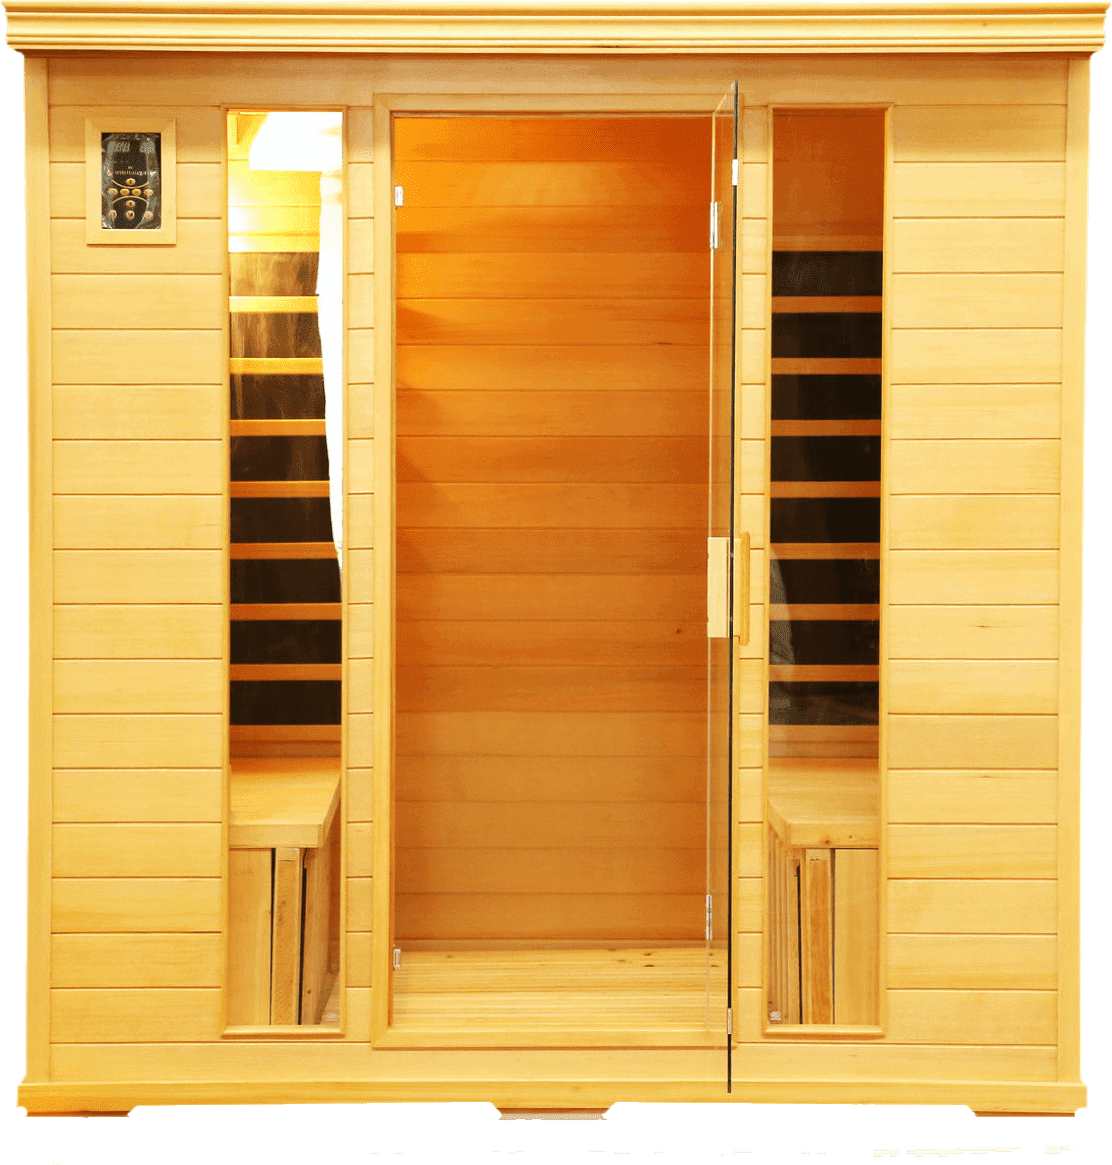 Chorus Infrared Himalayan Sauna Salt Cave (4 Person) U2013 71x48x74u2033